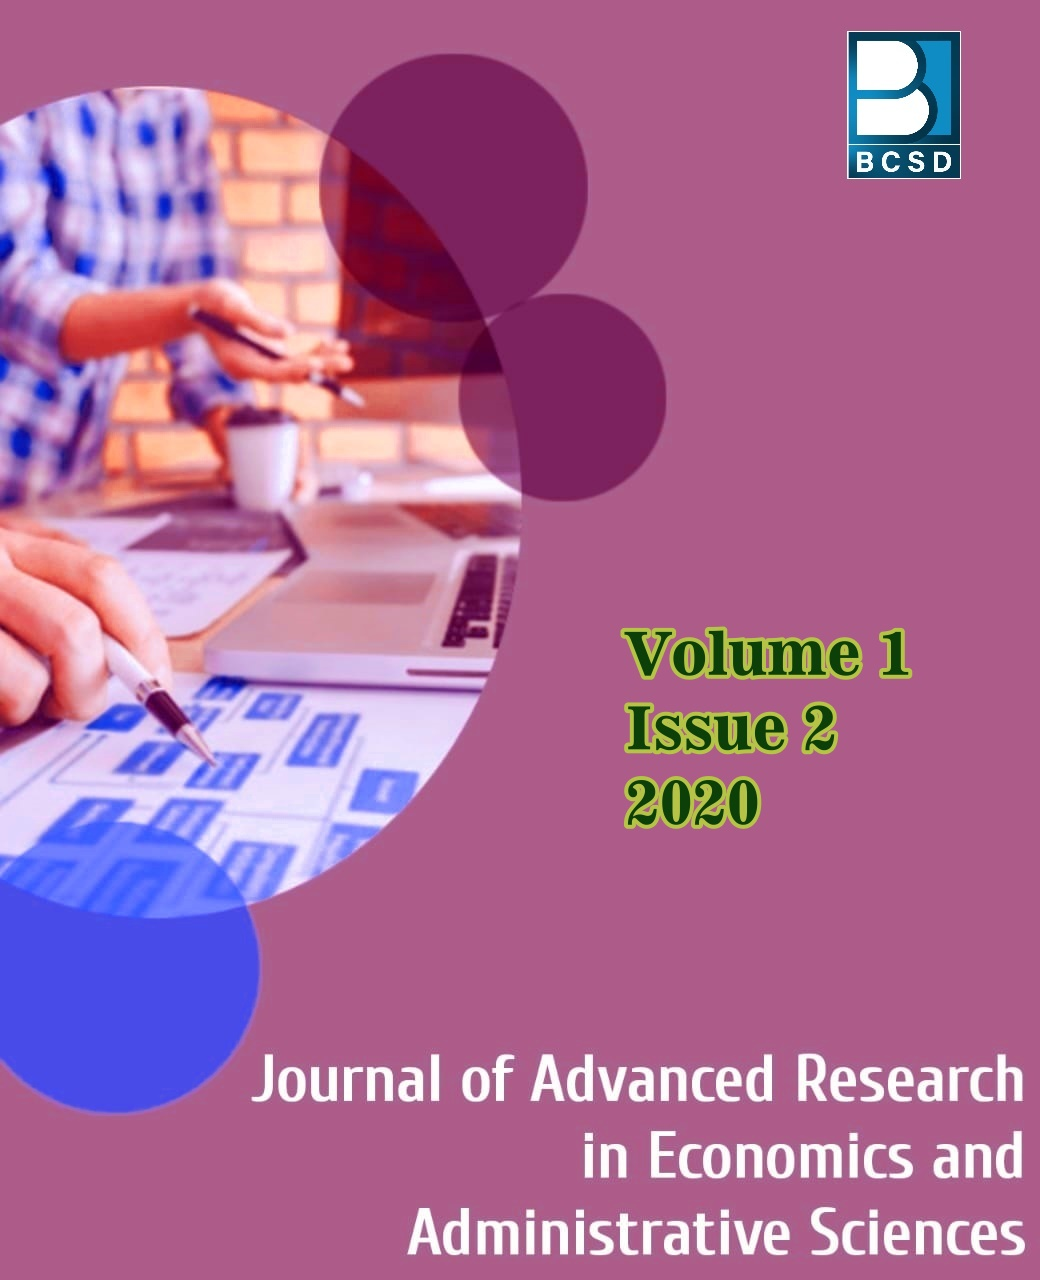 Journal of Advanced Research in Economics and Administrative Sciences-Asos İndeks